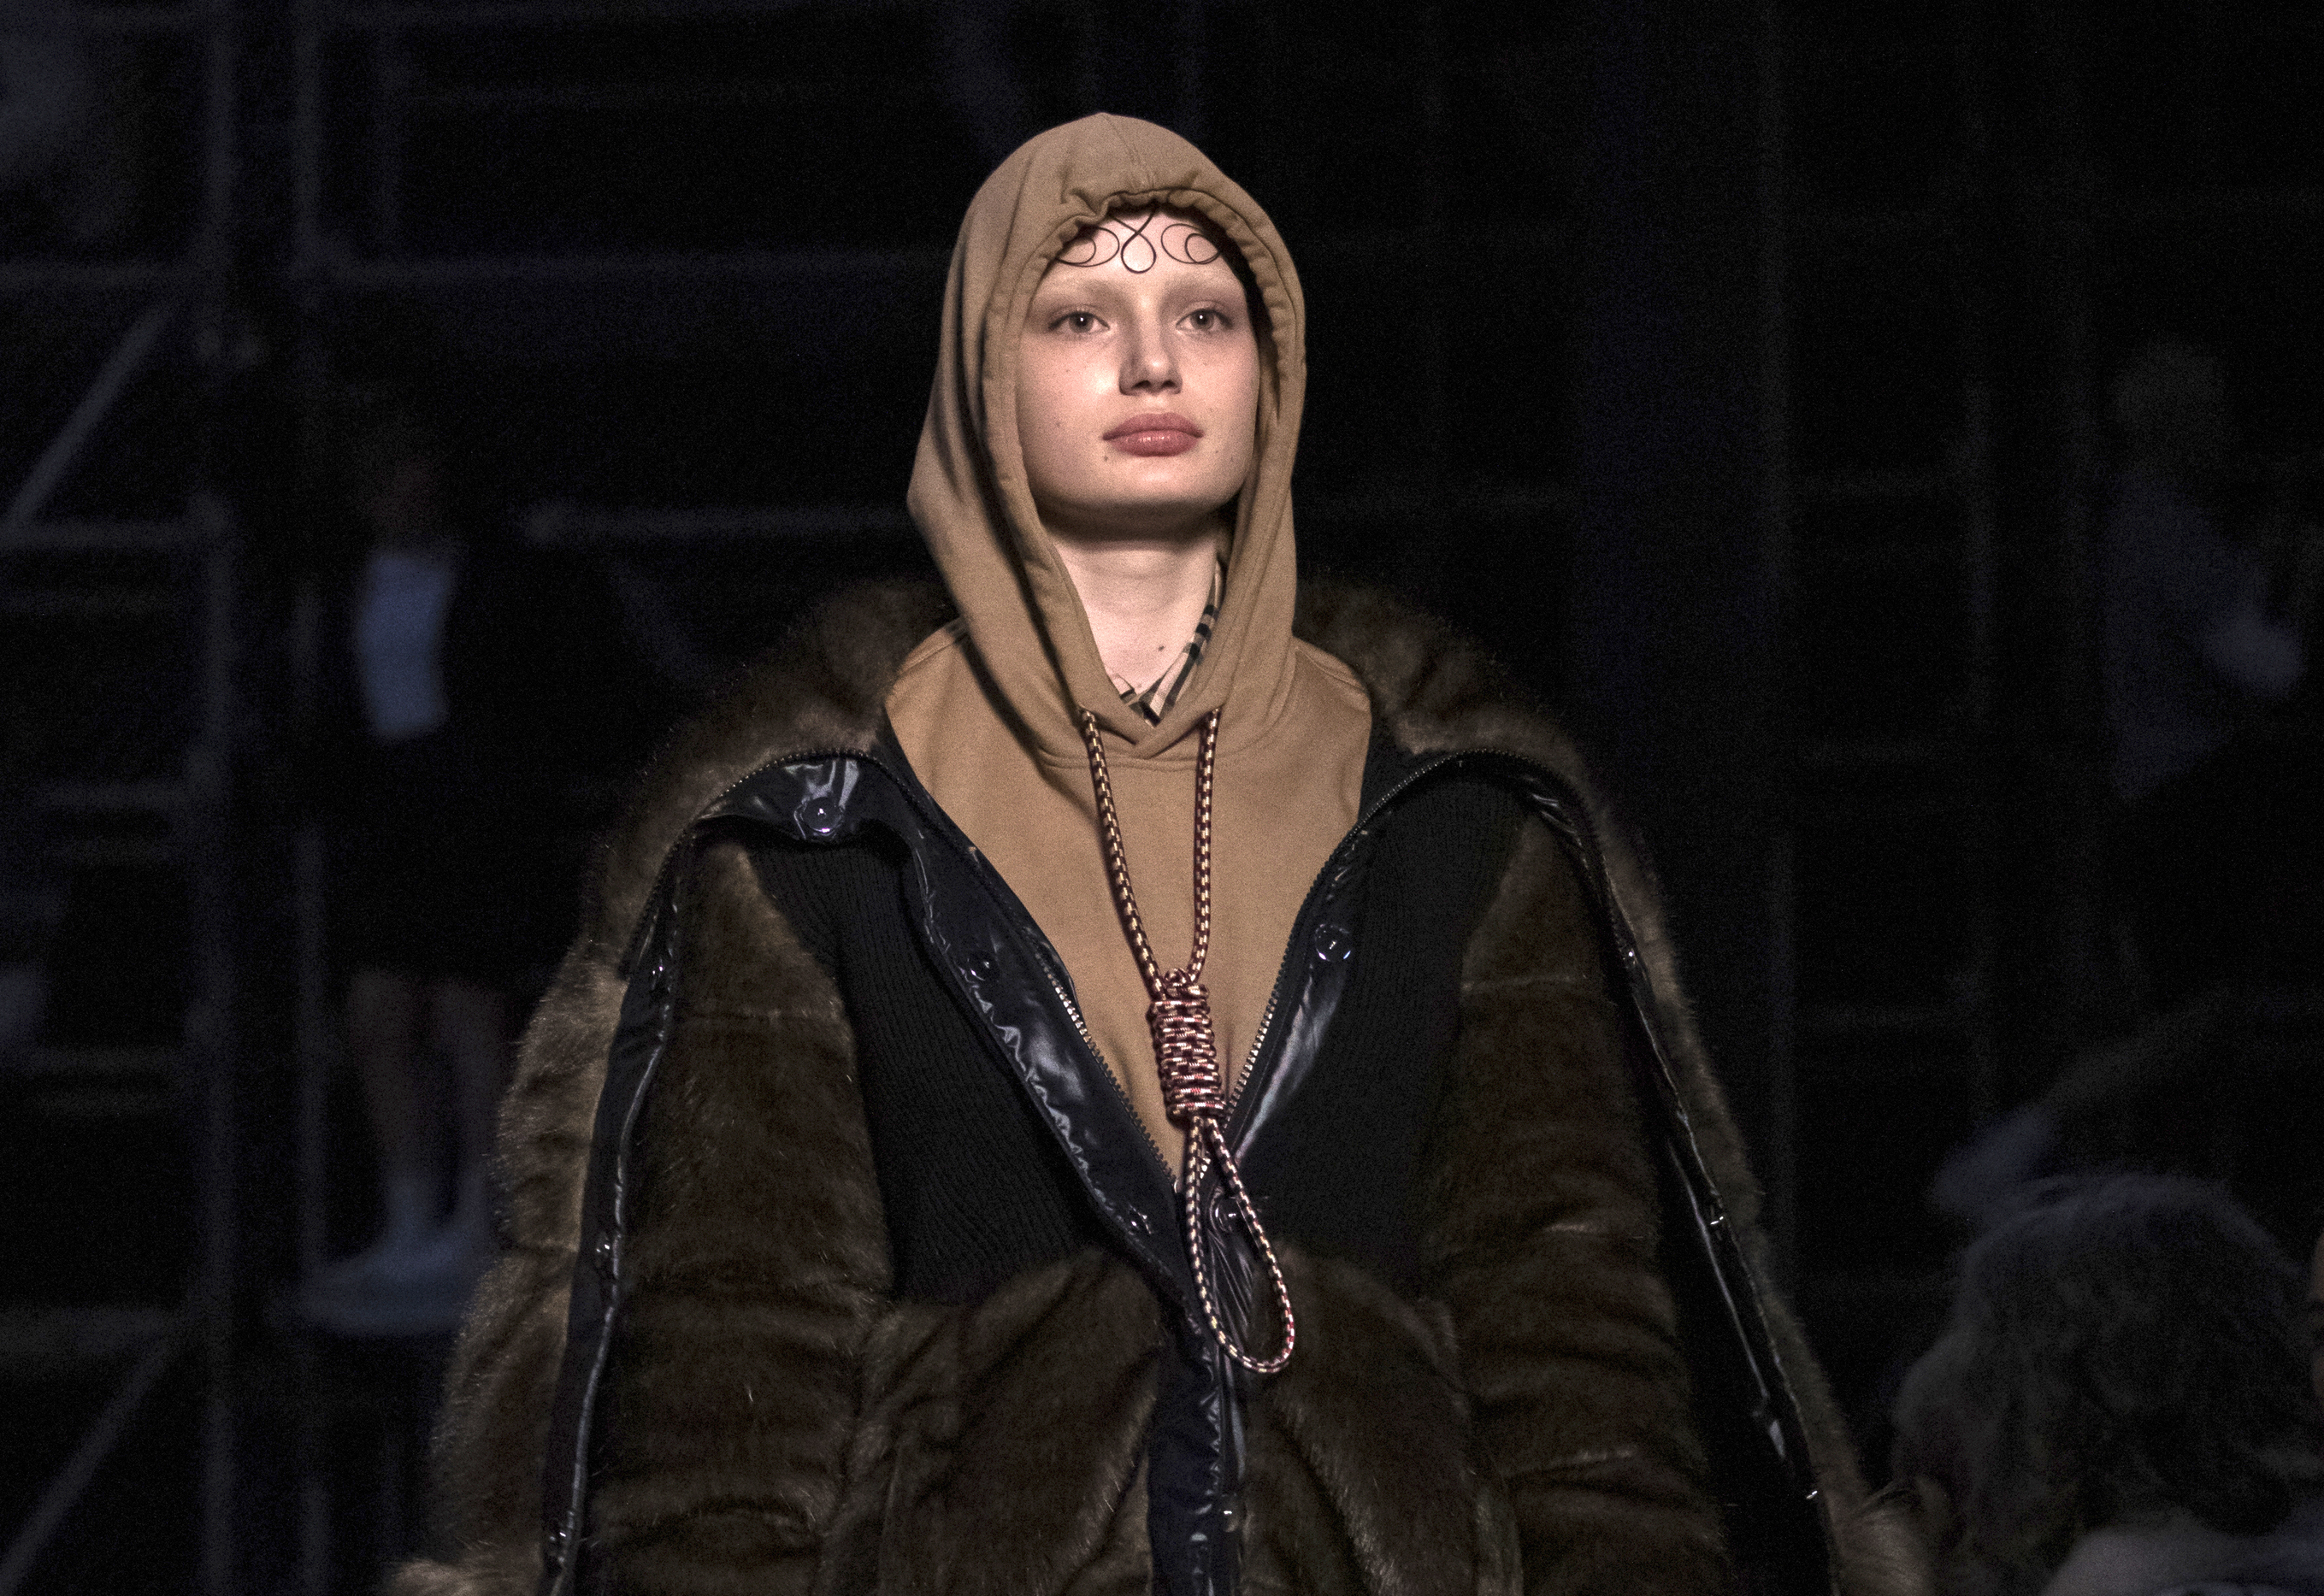 Burberry 'Deeply Sorry' for Hoodie With Noose